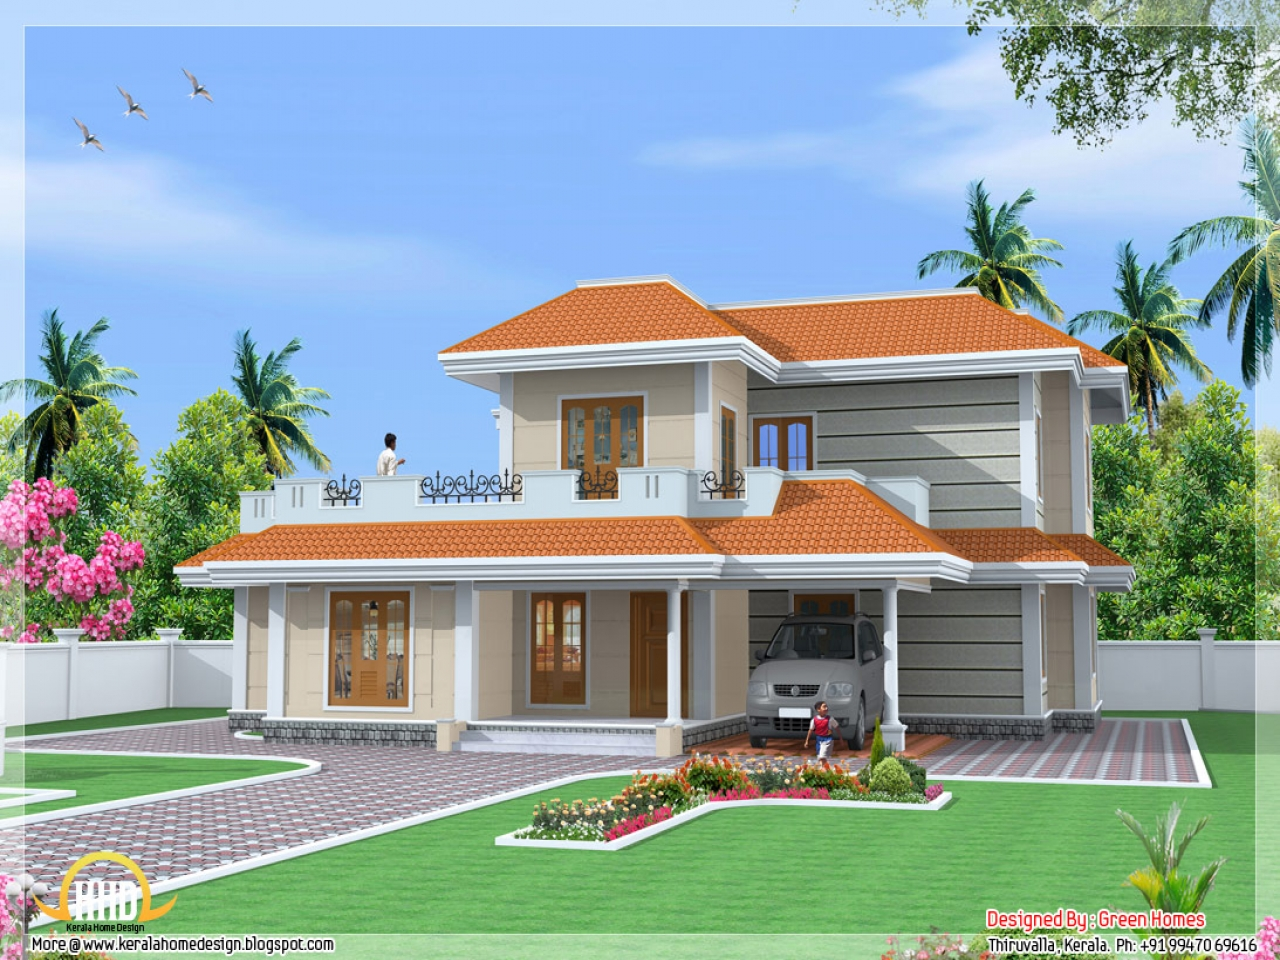 Most beautiful houses in kerala kerala model house design - Beautiful front designs of homes ...